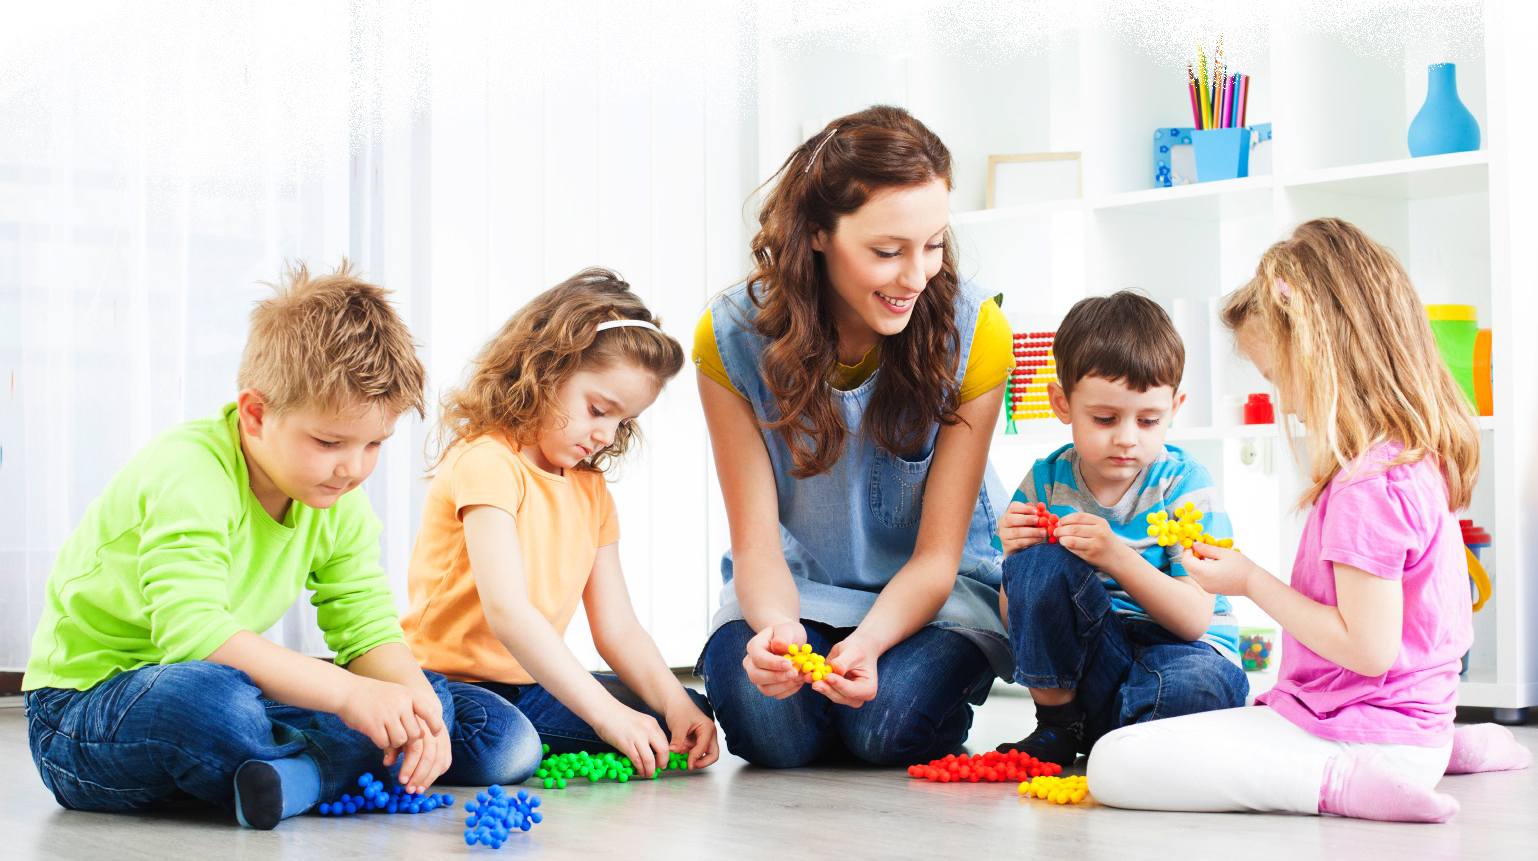 How to start a daycare?